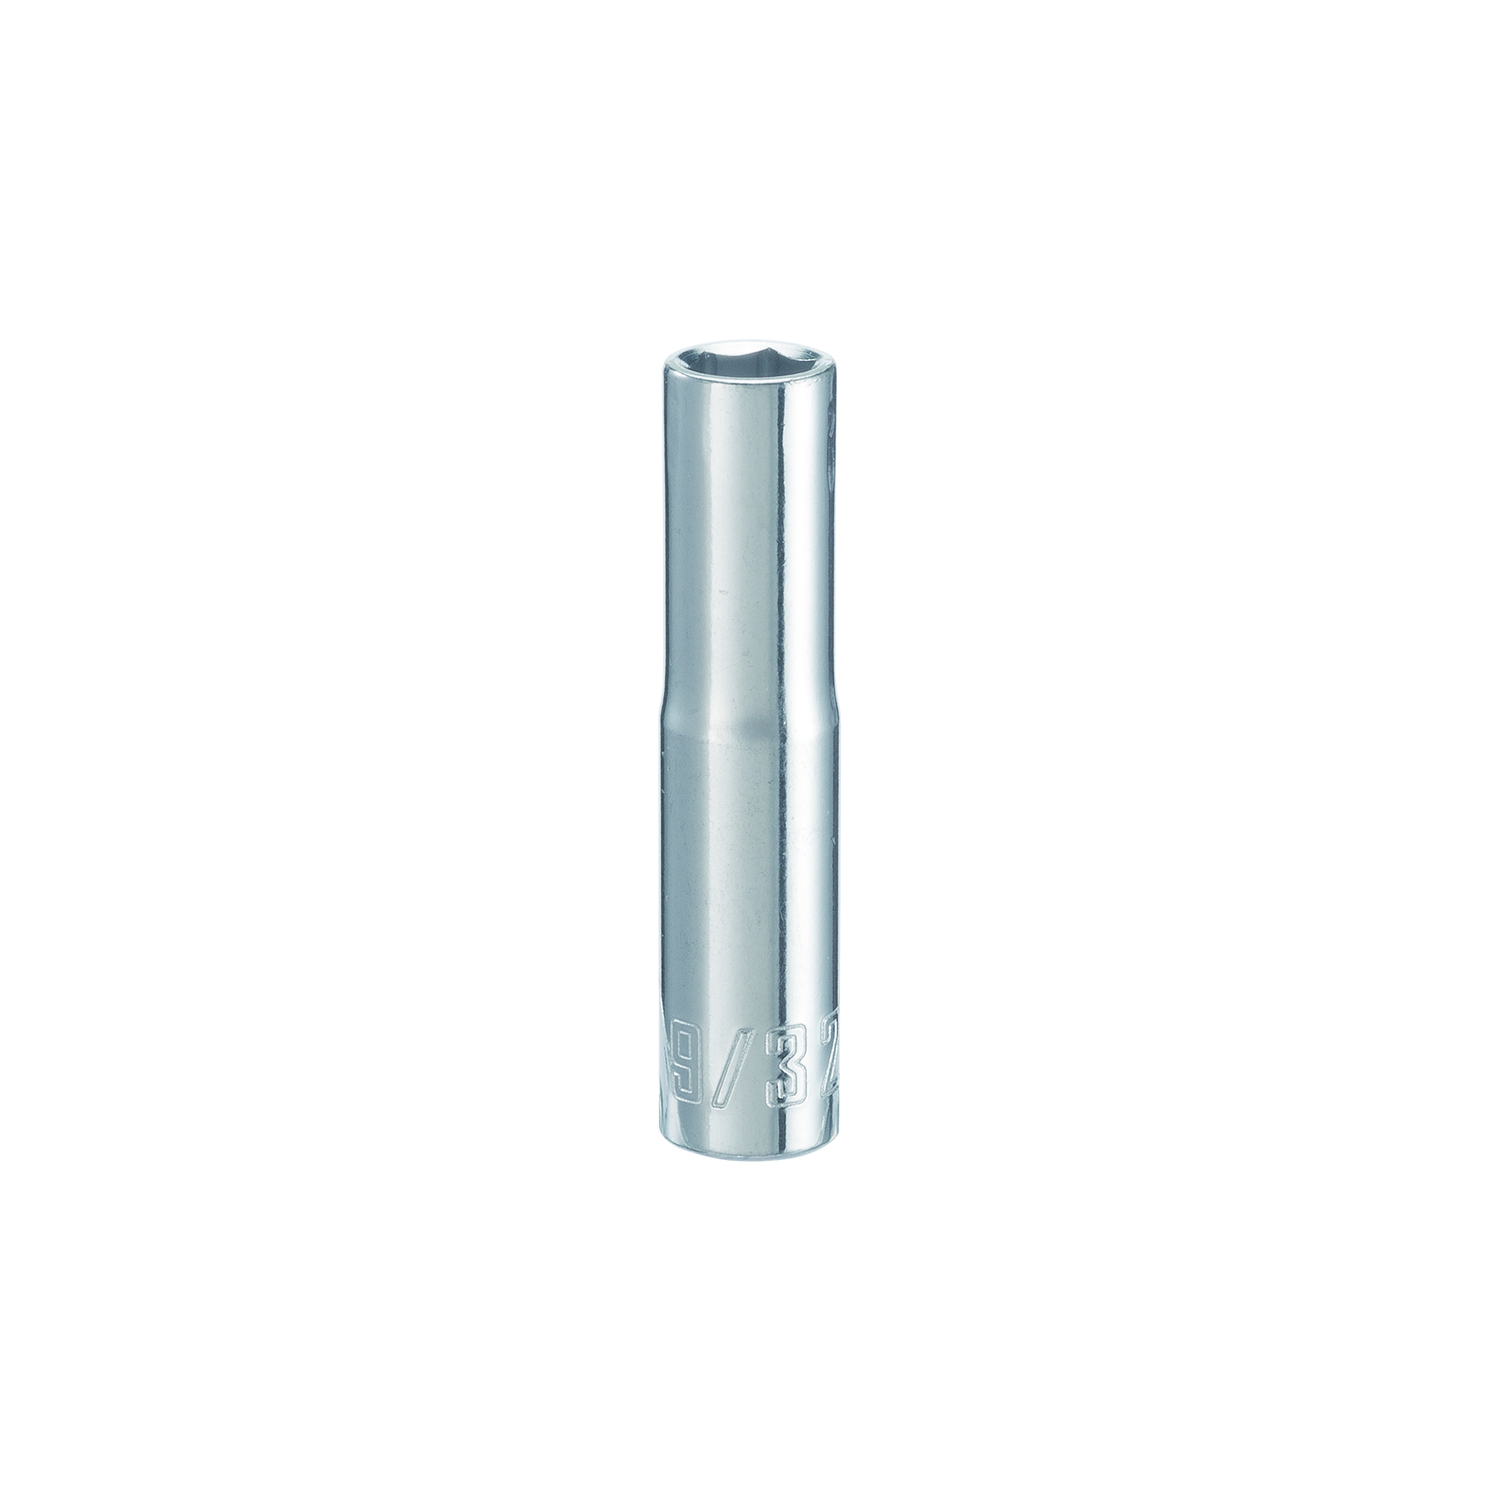 Craftsman  9/32 in.  x 1/4 in. drive  SAE  6 Point Deep  Socket  1 pc.